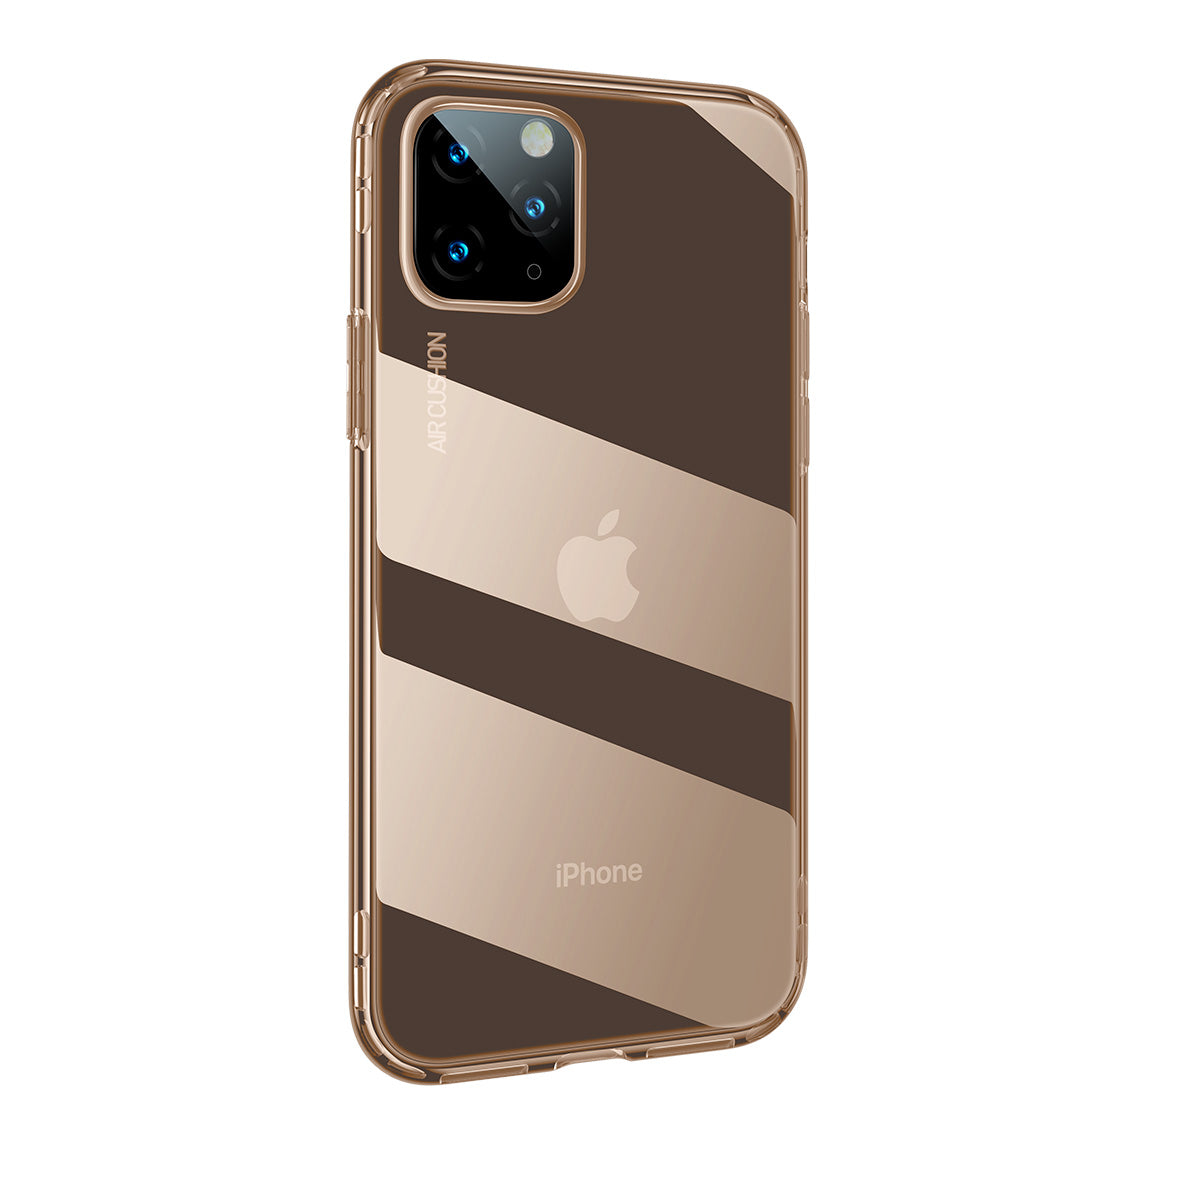 Baseus_Safety_Airbags_iPhone_11_Pro_Case_Transparent_Gold_side_S78Y4PQZFWM9.jpg